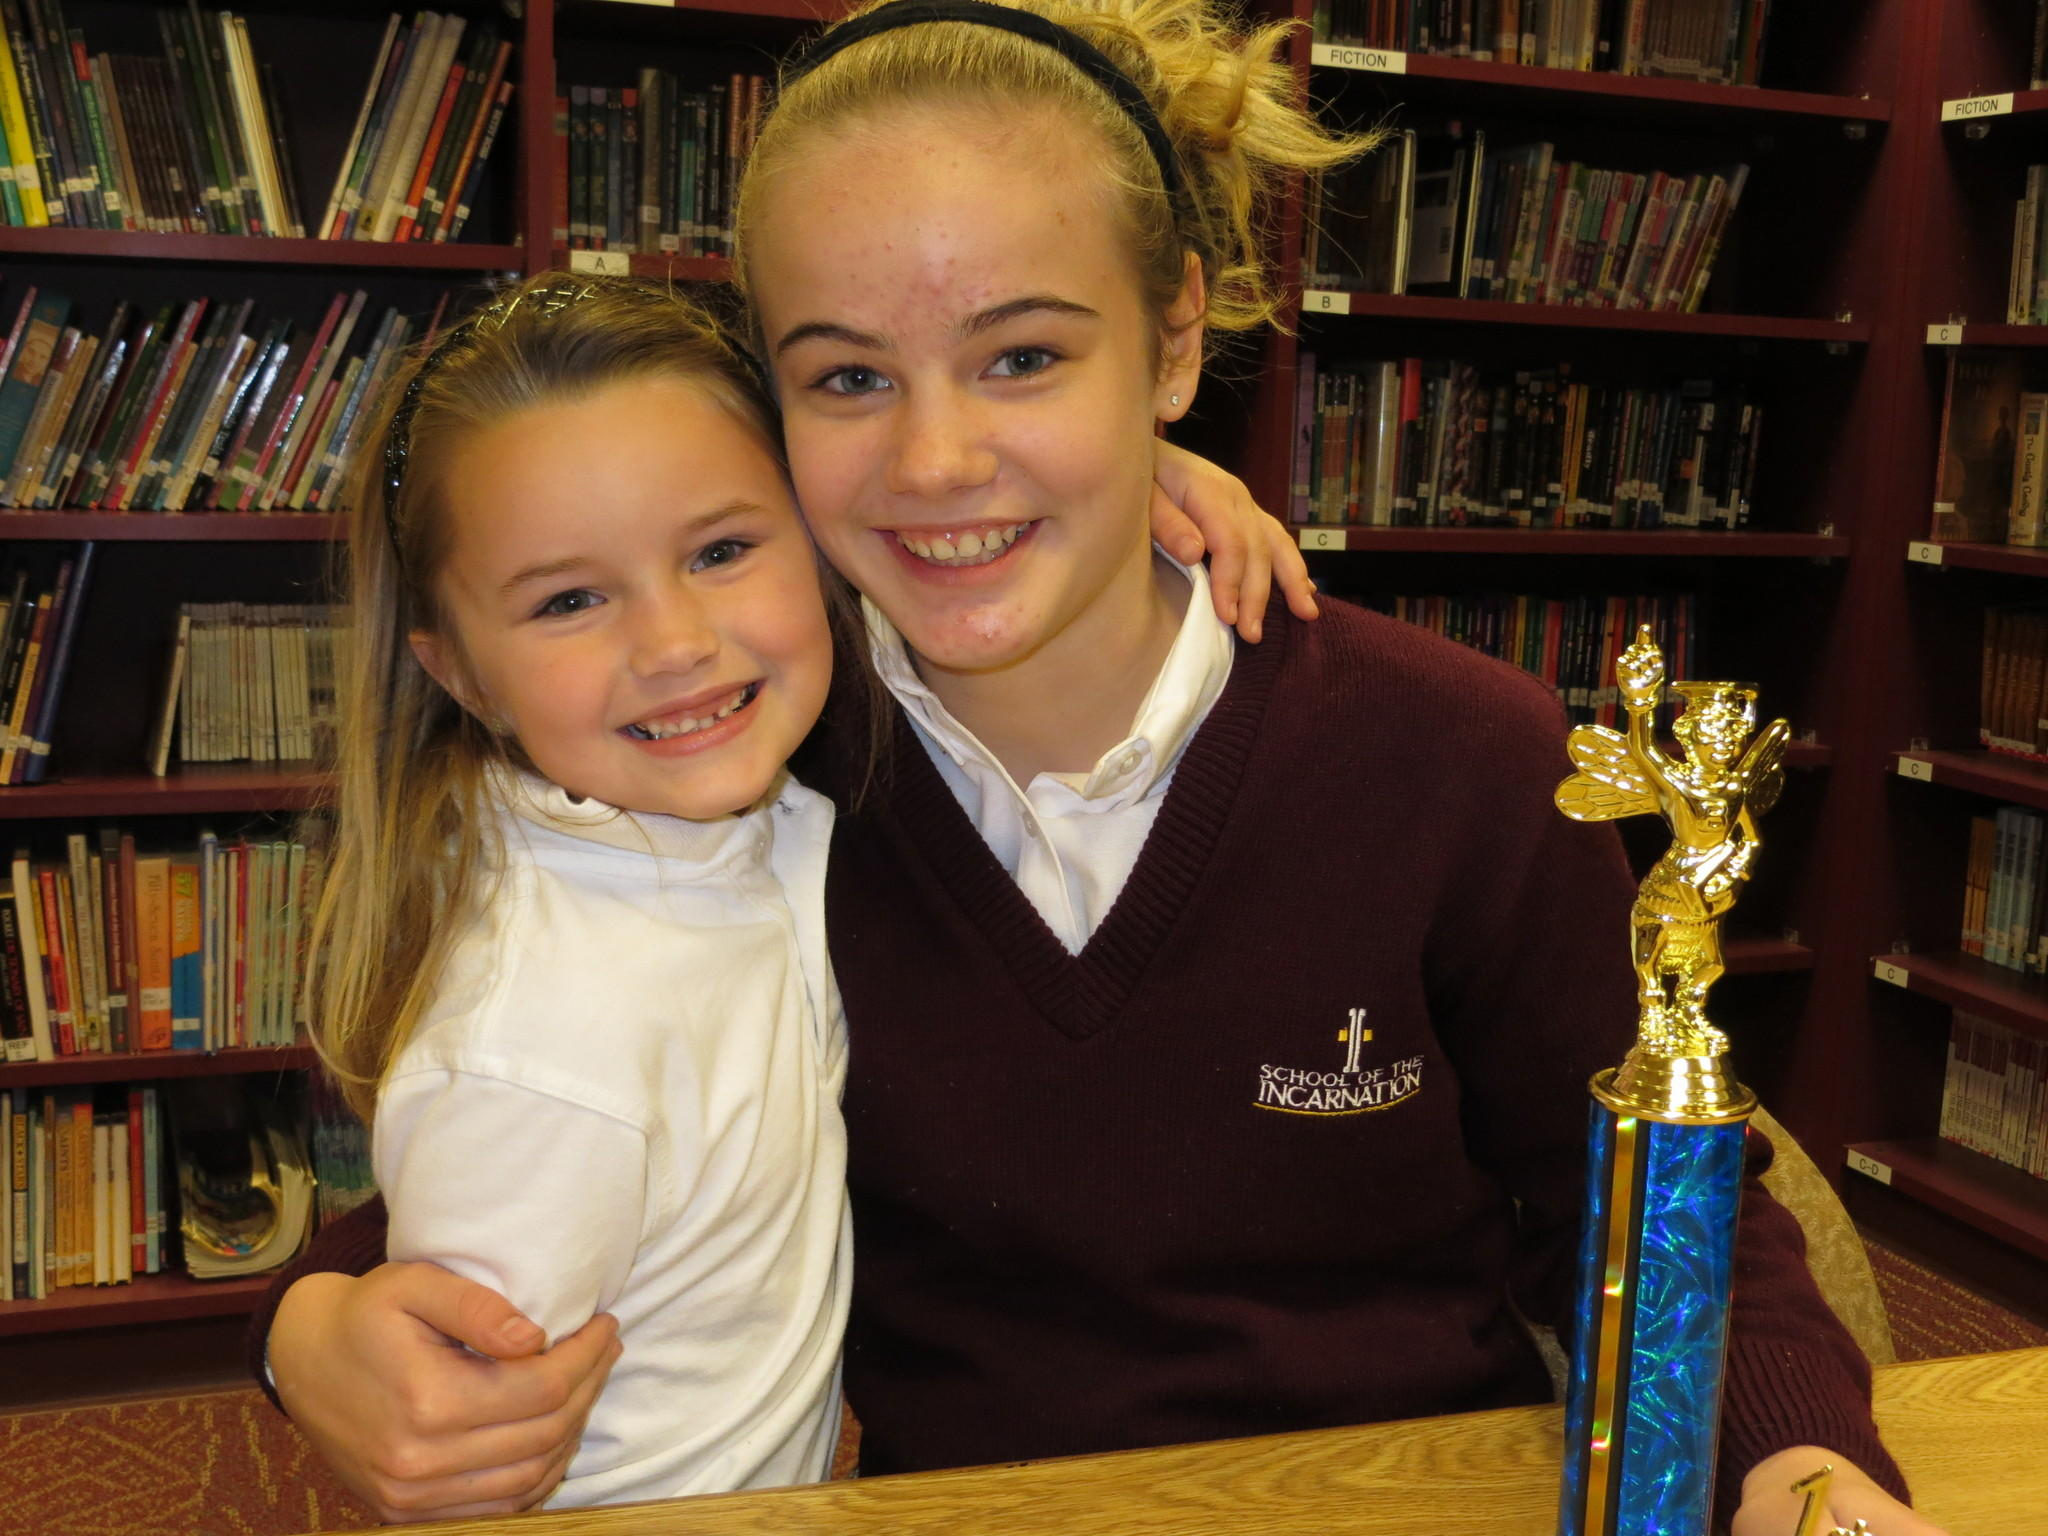 Isabelle Simmons and younger sister Alexandra, also a School of the Incarnation student. Isabelle was the champion of the 26th annual Anne Arundel County Spelling Bee and will now represent the county at the Scripps National Spelling Bee in Washington, D.C.